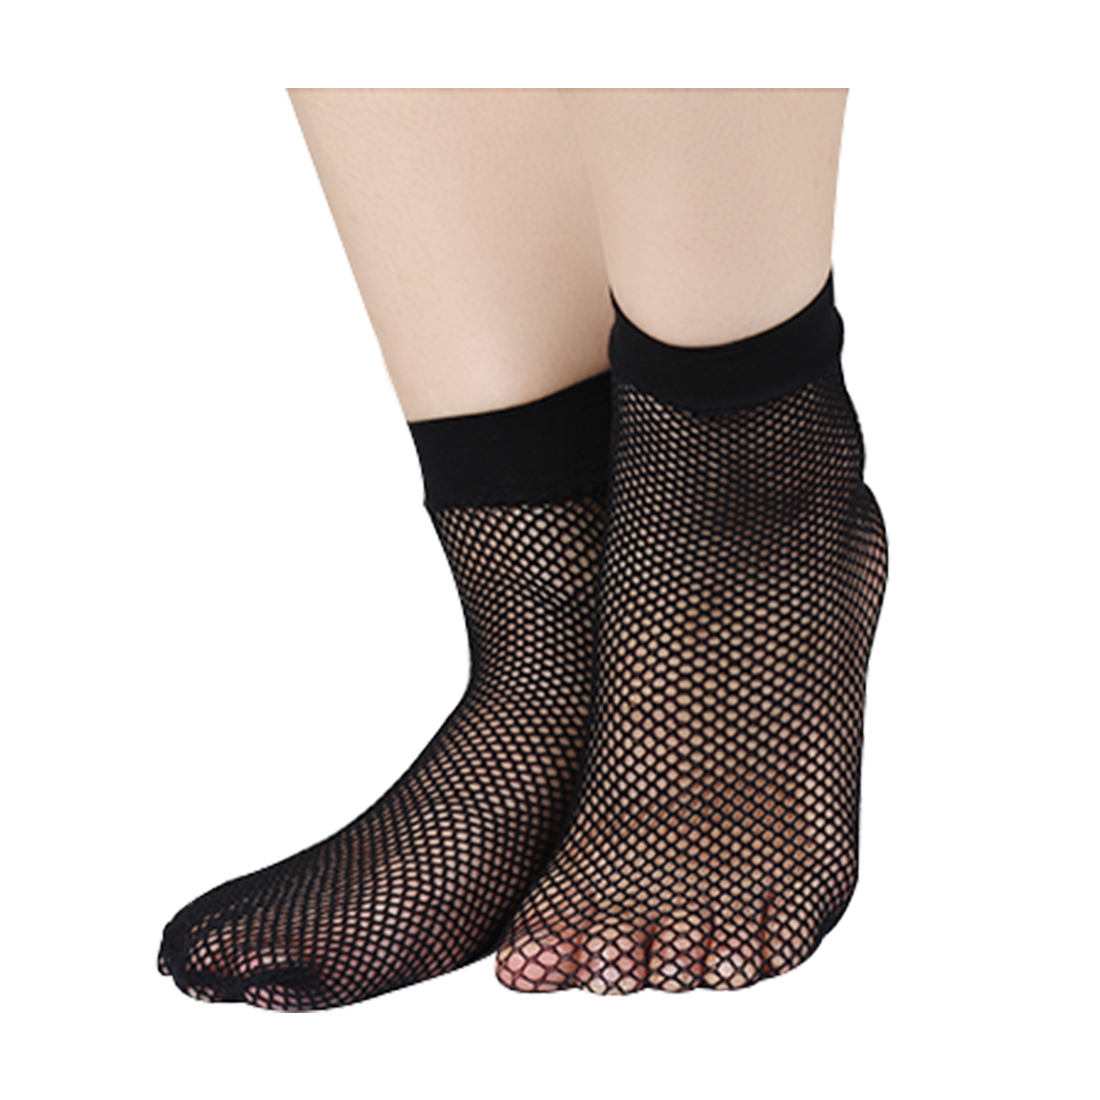 Women 10 Pairs Trendy Fishnet Ankle High Small Net Short Socks Black